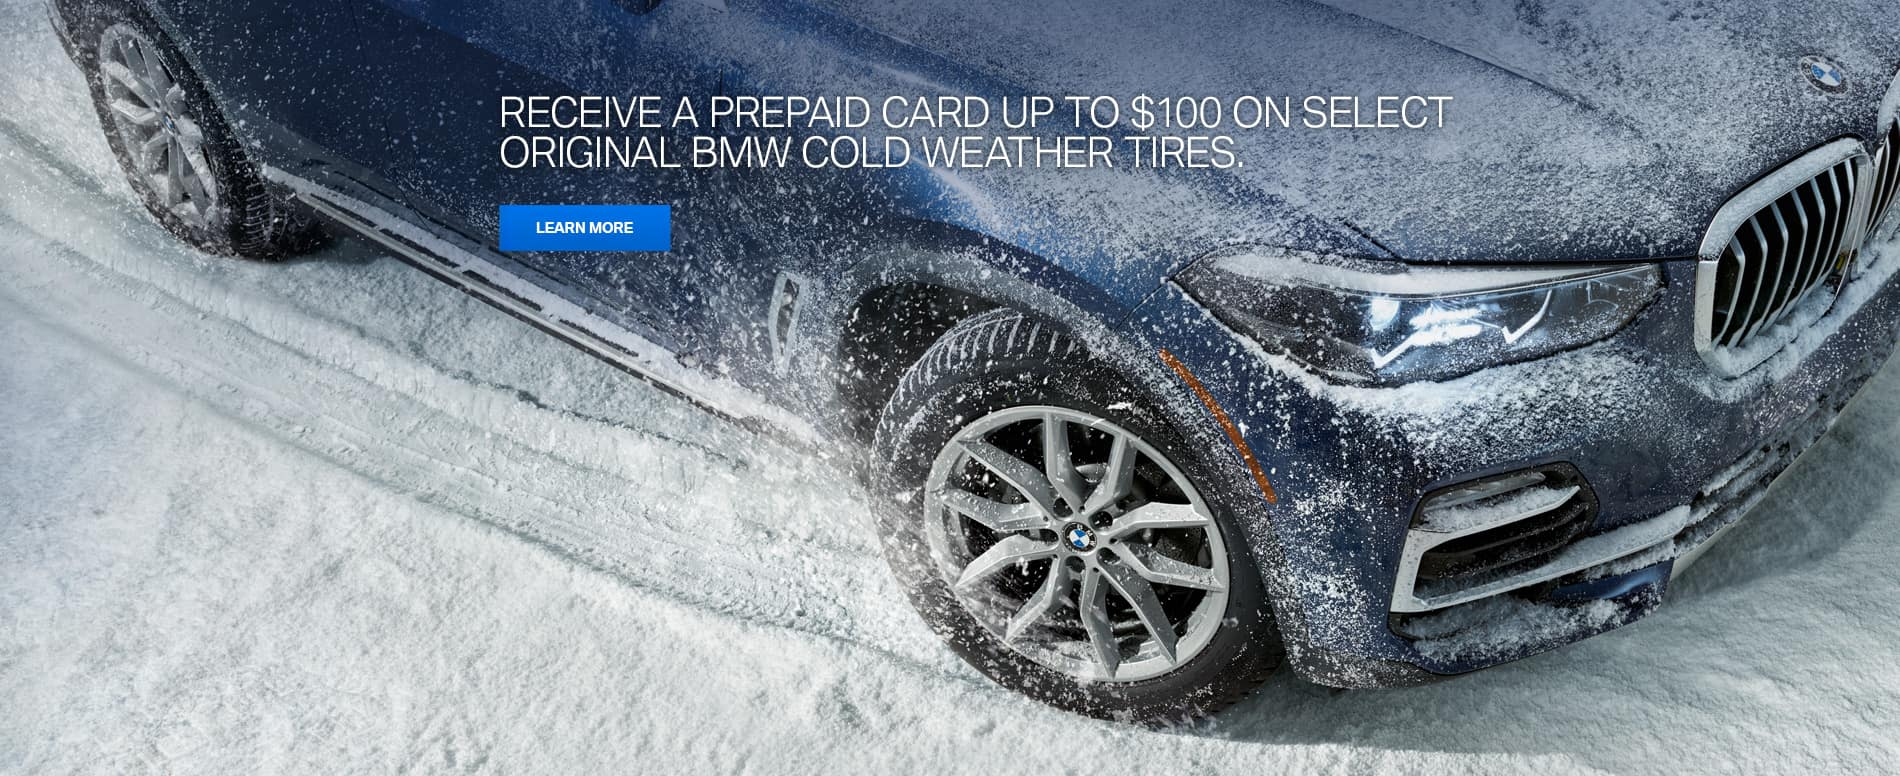 Blue BMW X5 with V-Spoke Style 734 Silver  wheels driving over snow covered ground leaving tire tracks in the snow.